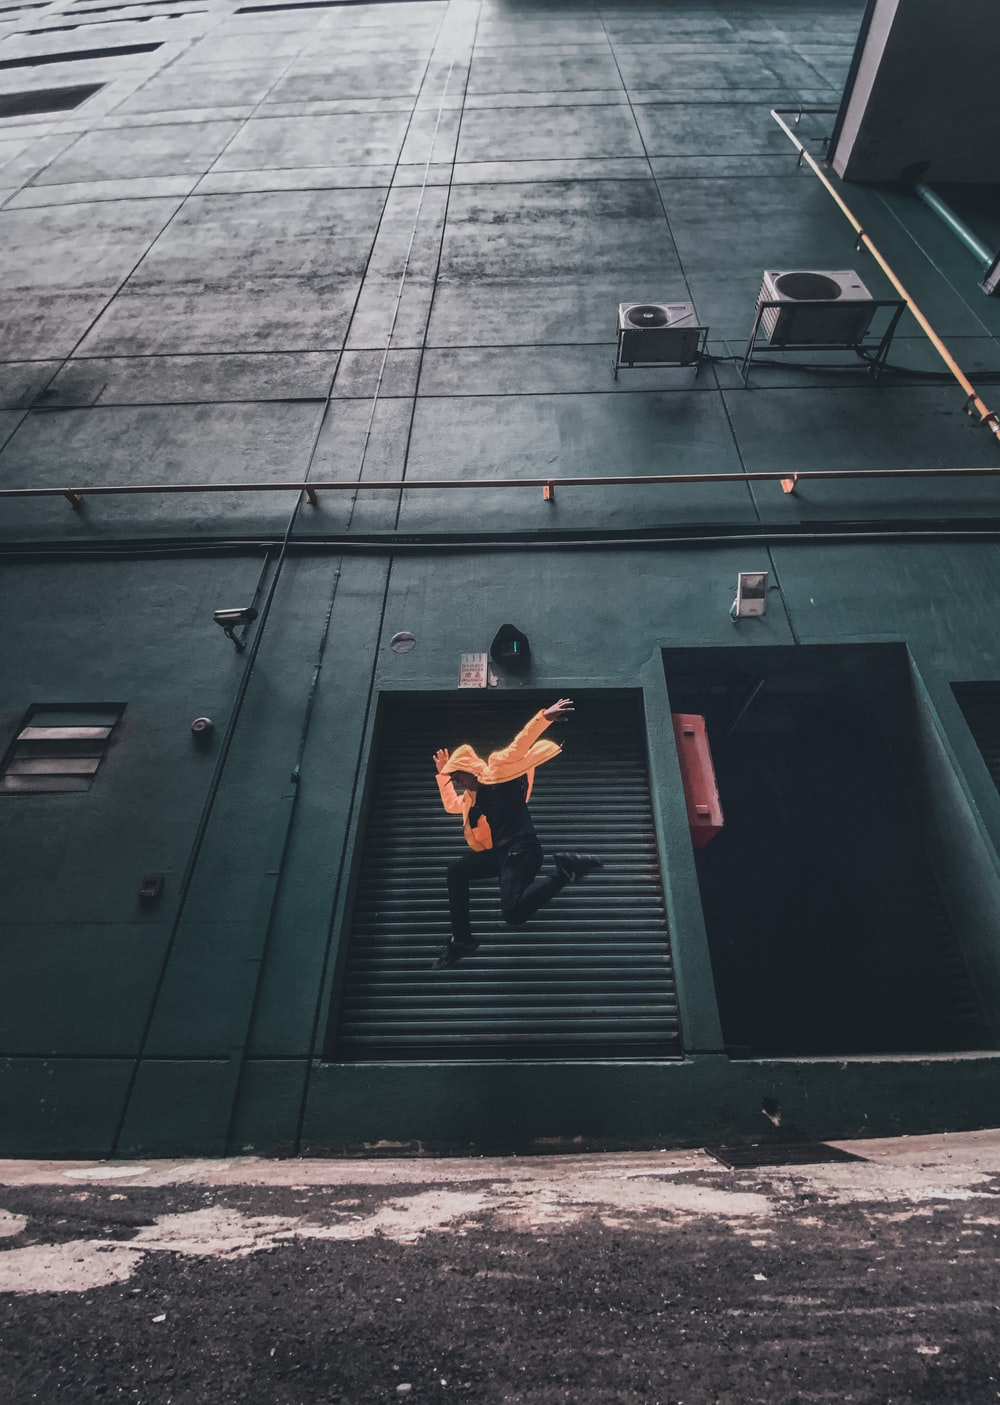 timelapse photography of person jumping near building